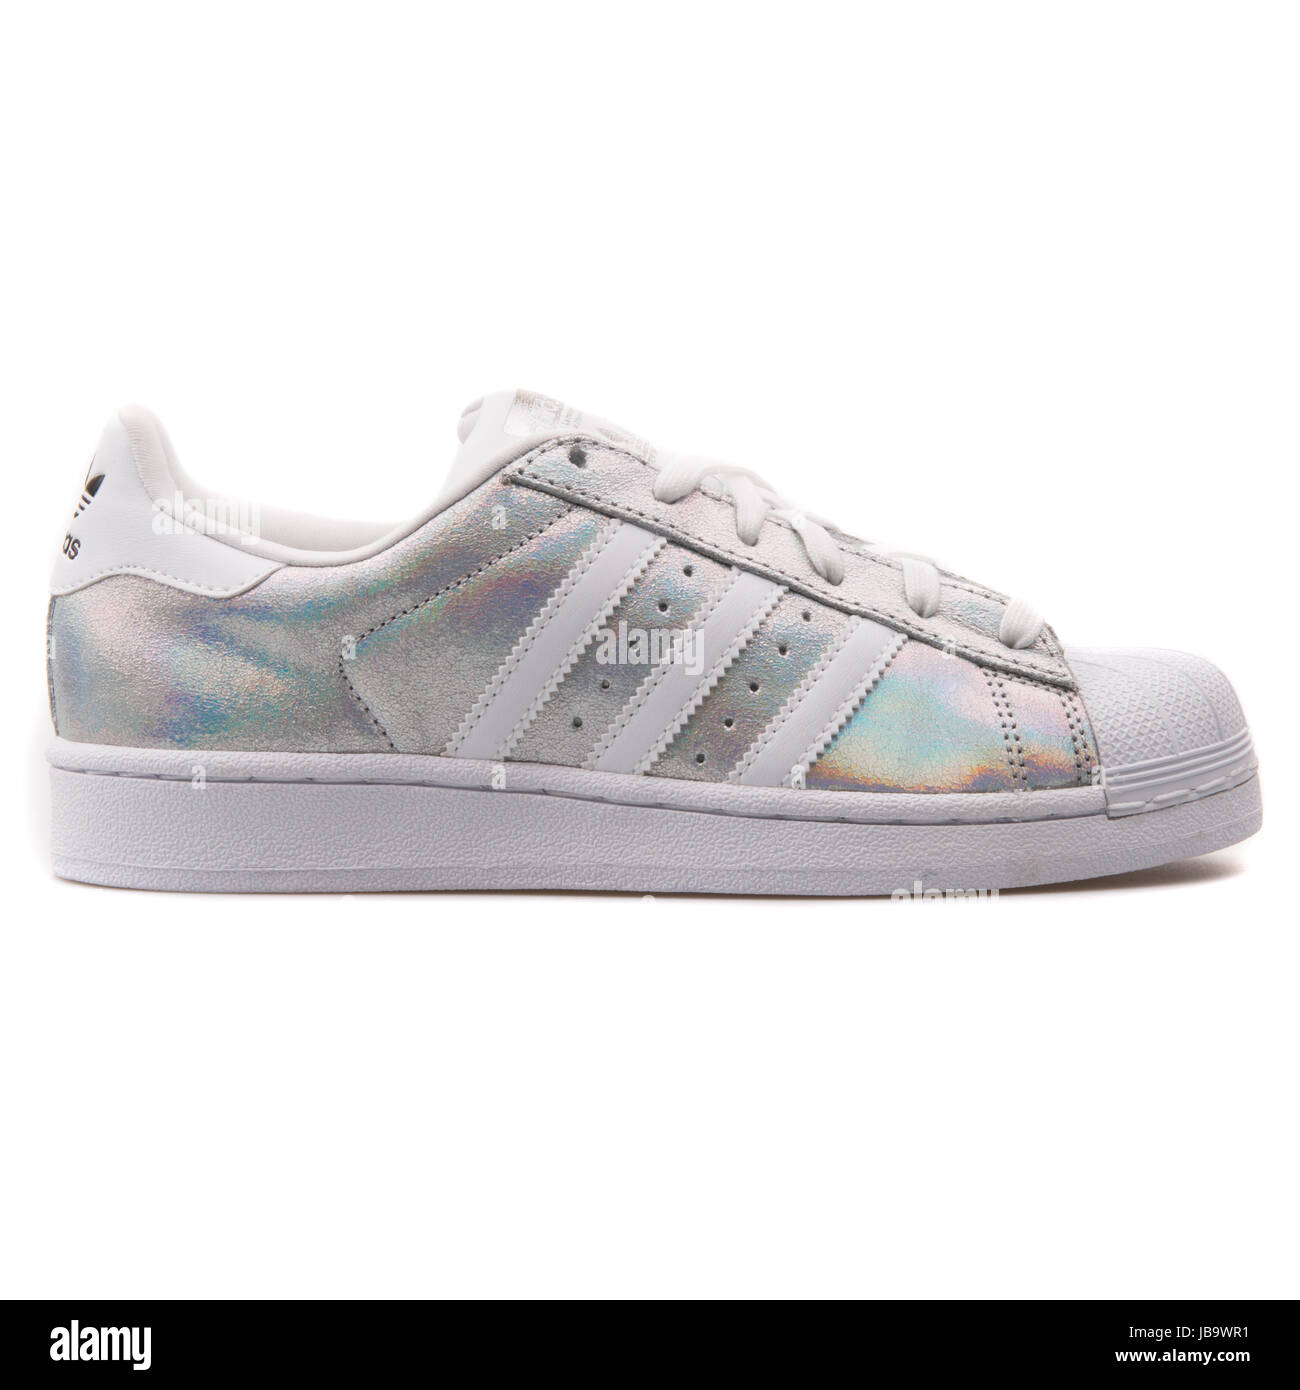 buy popular b8a52 4a652 Adidas Superstar W Hologram Iridescent Women's Shoes ...